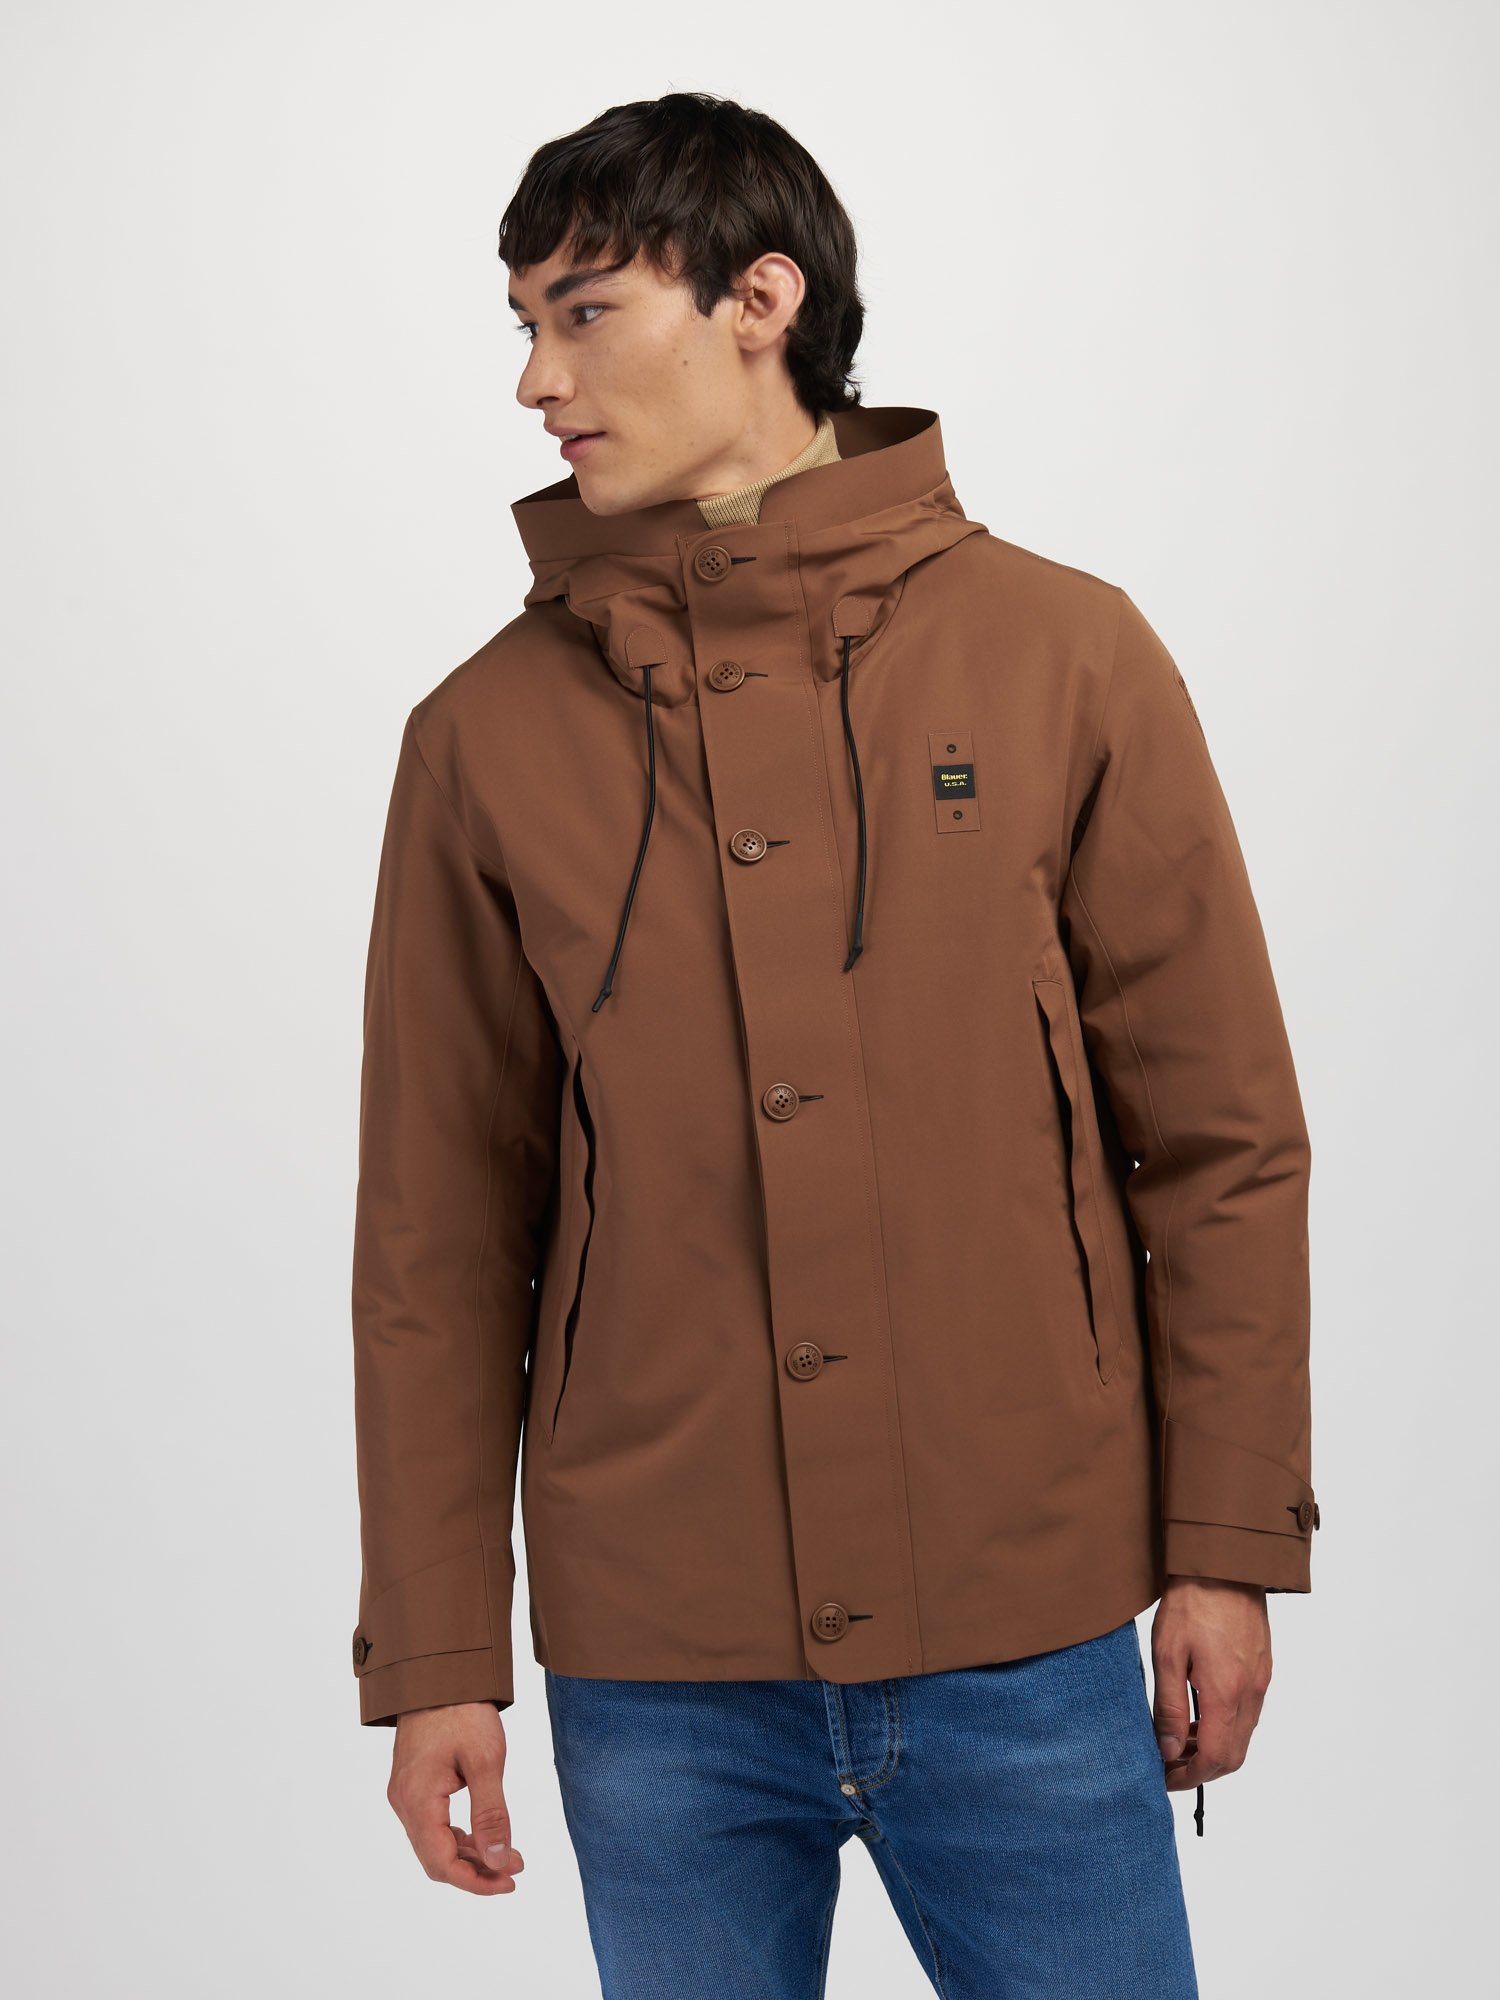 ERNEST JACKET WITH DETACHABLE LINING - Blauer